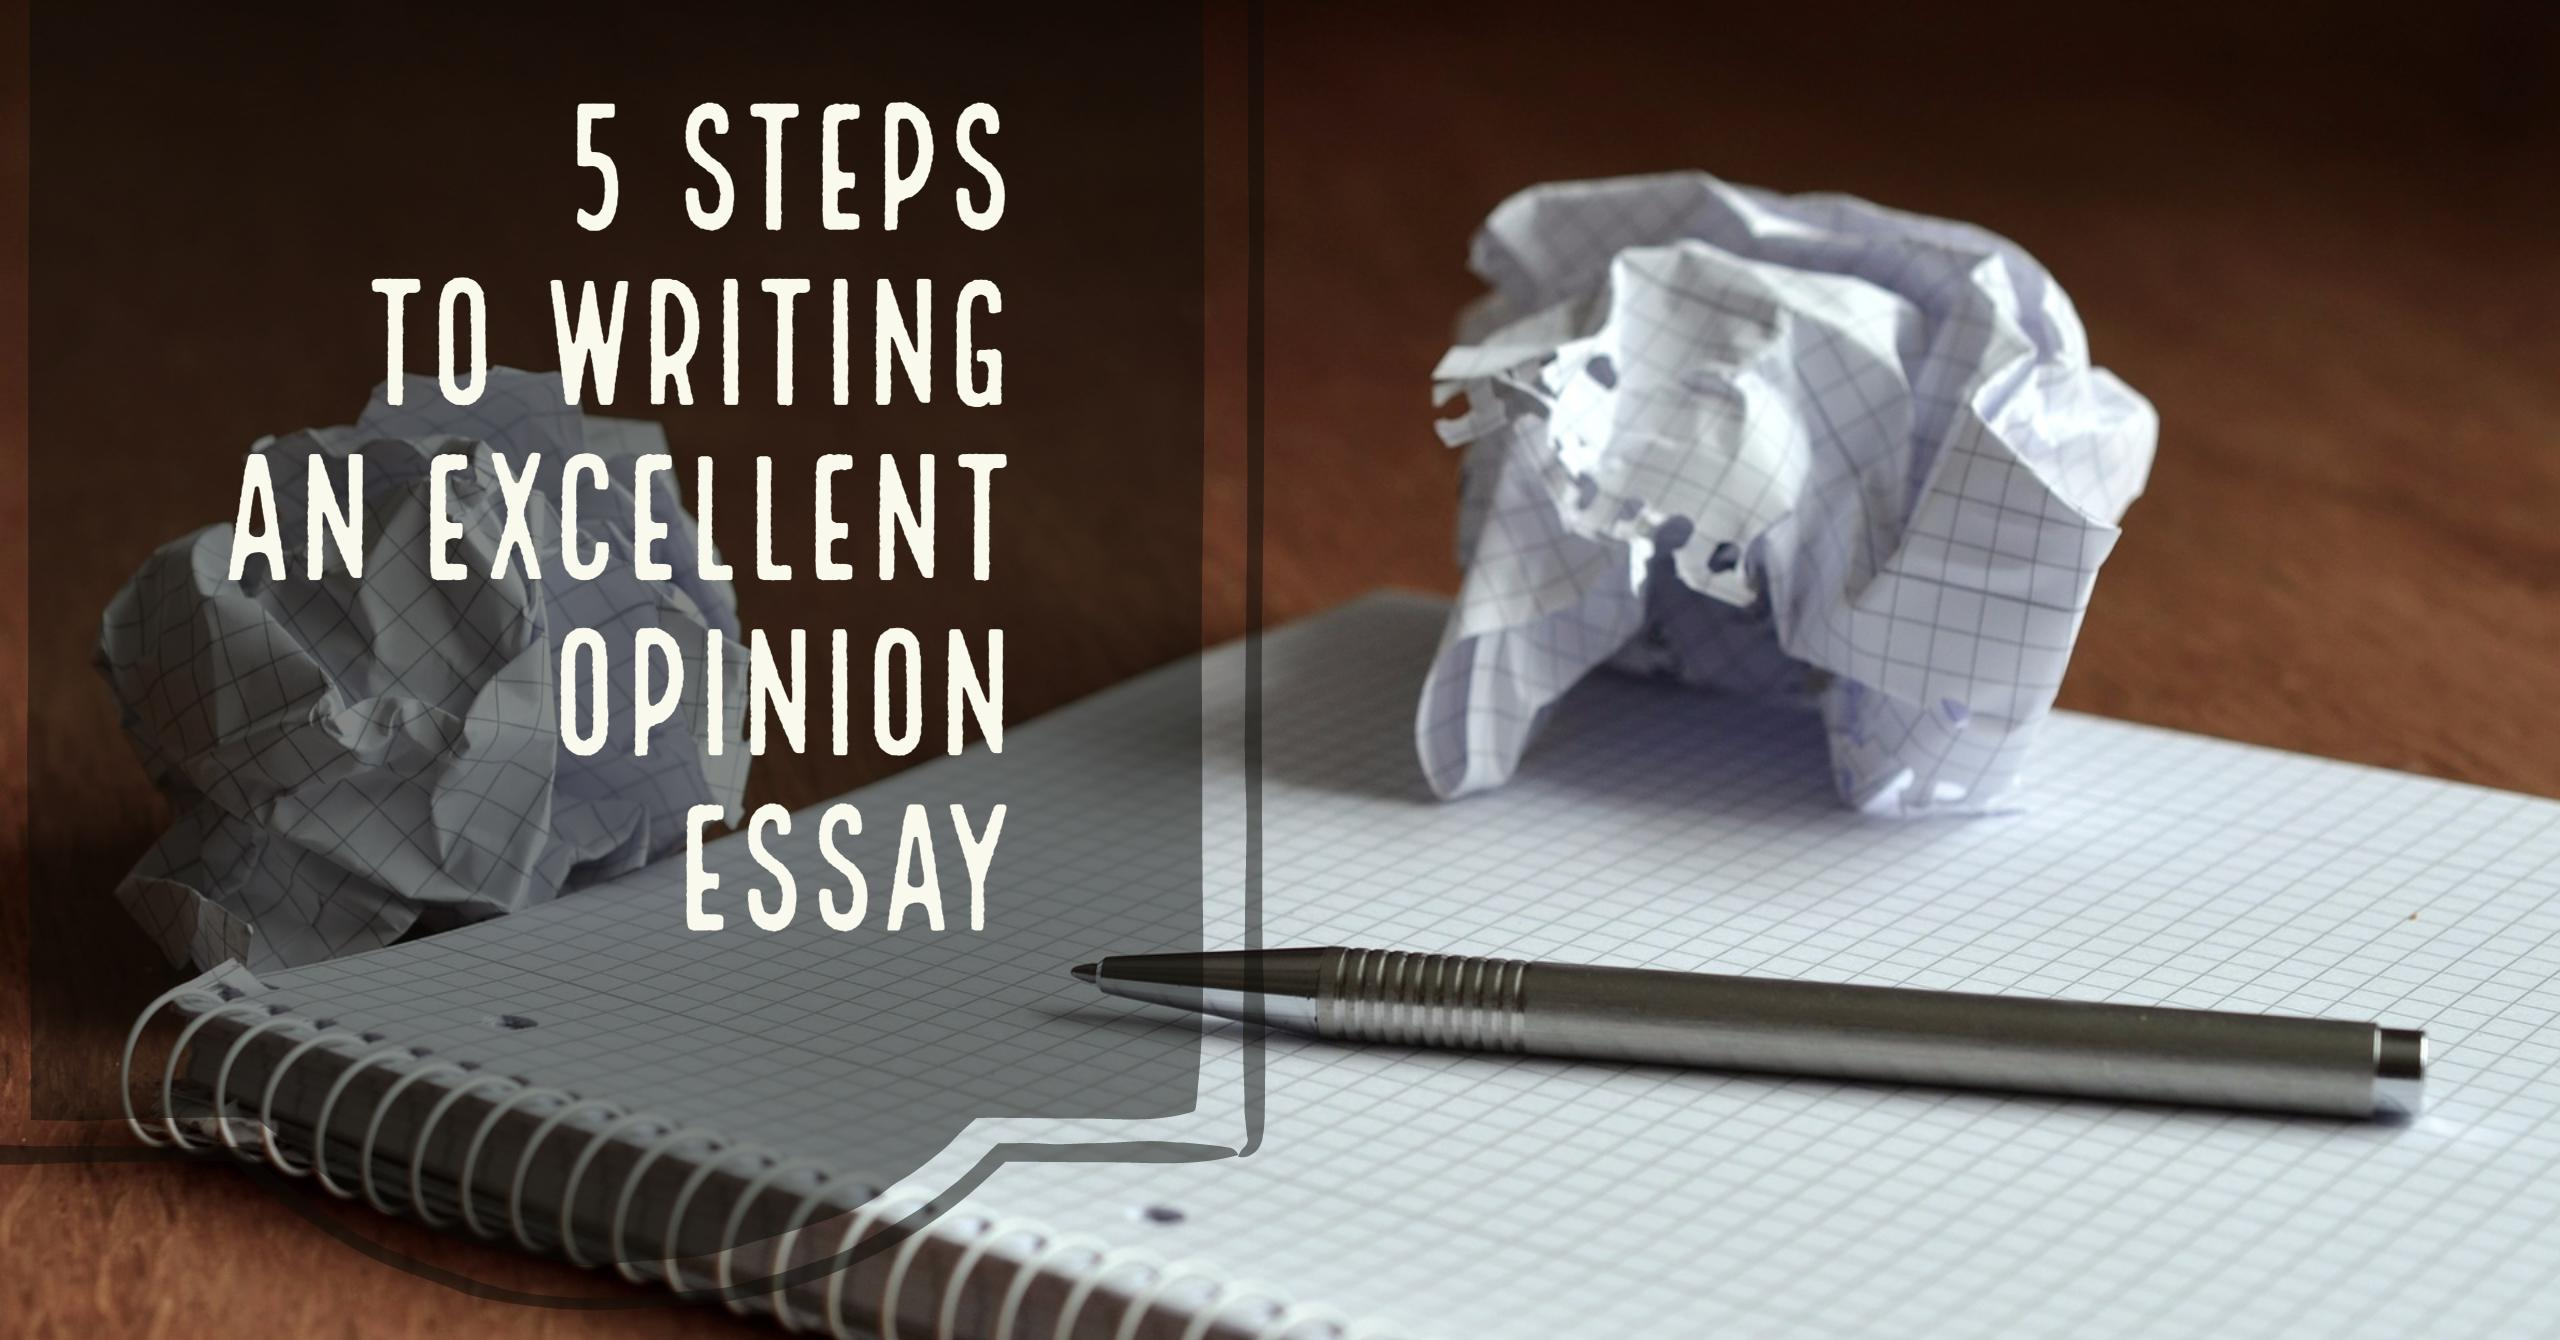 How To Write An Opinion Essay Step By Step